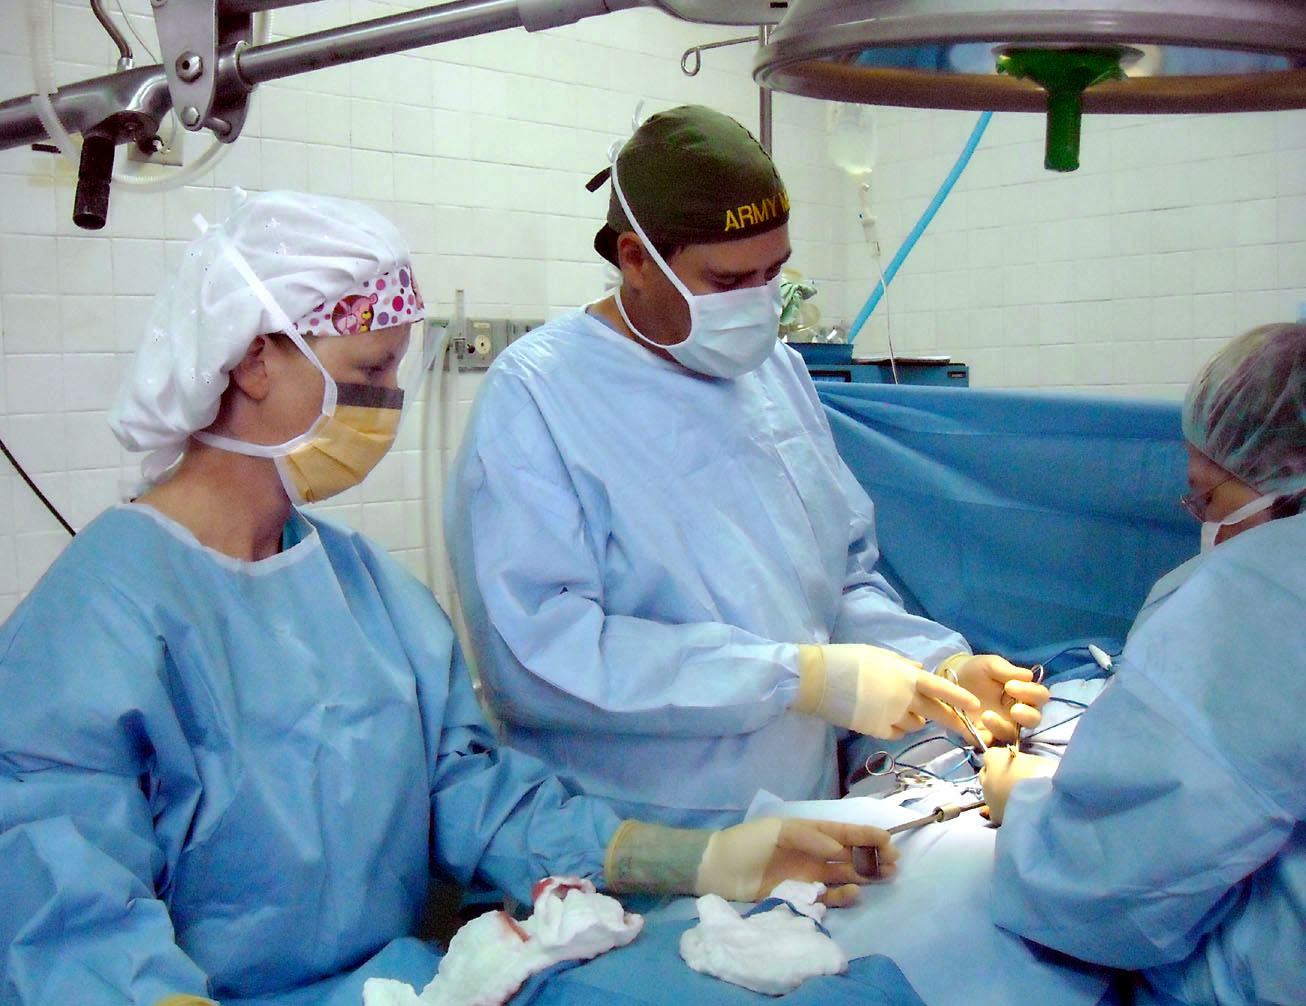 Jtf Bravo Surgical Team Aims To Improve Quality Of Life